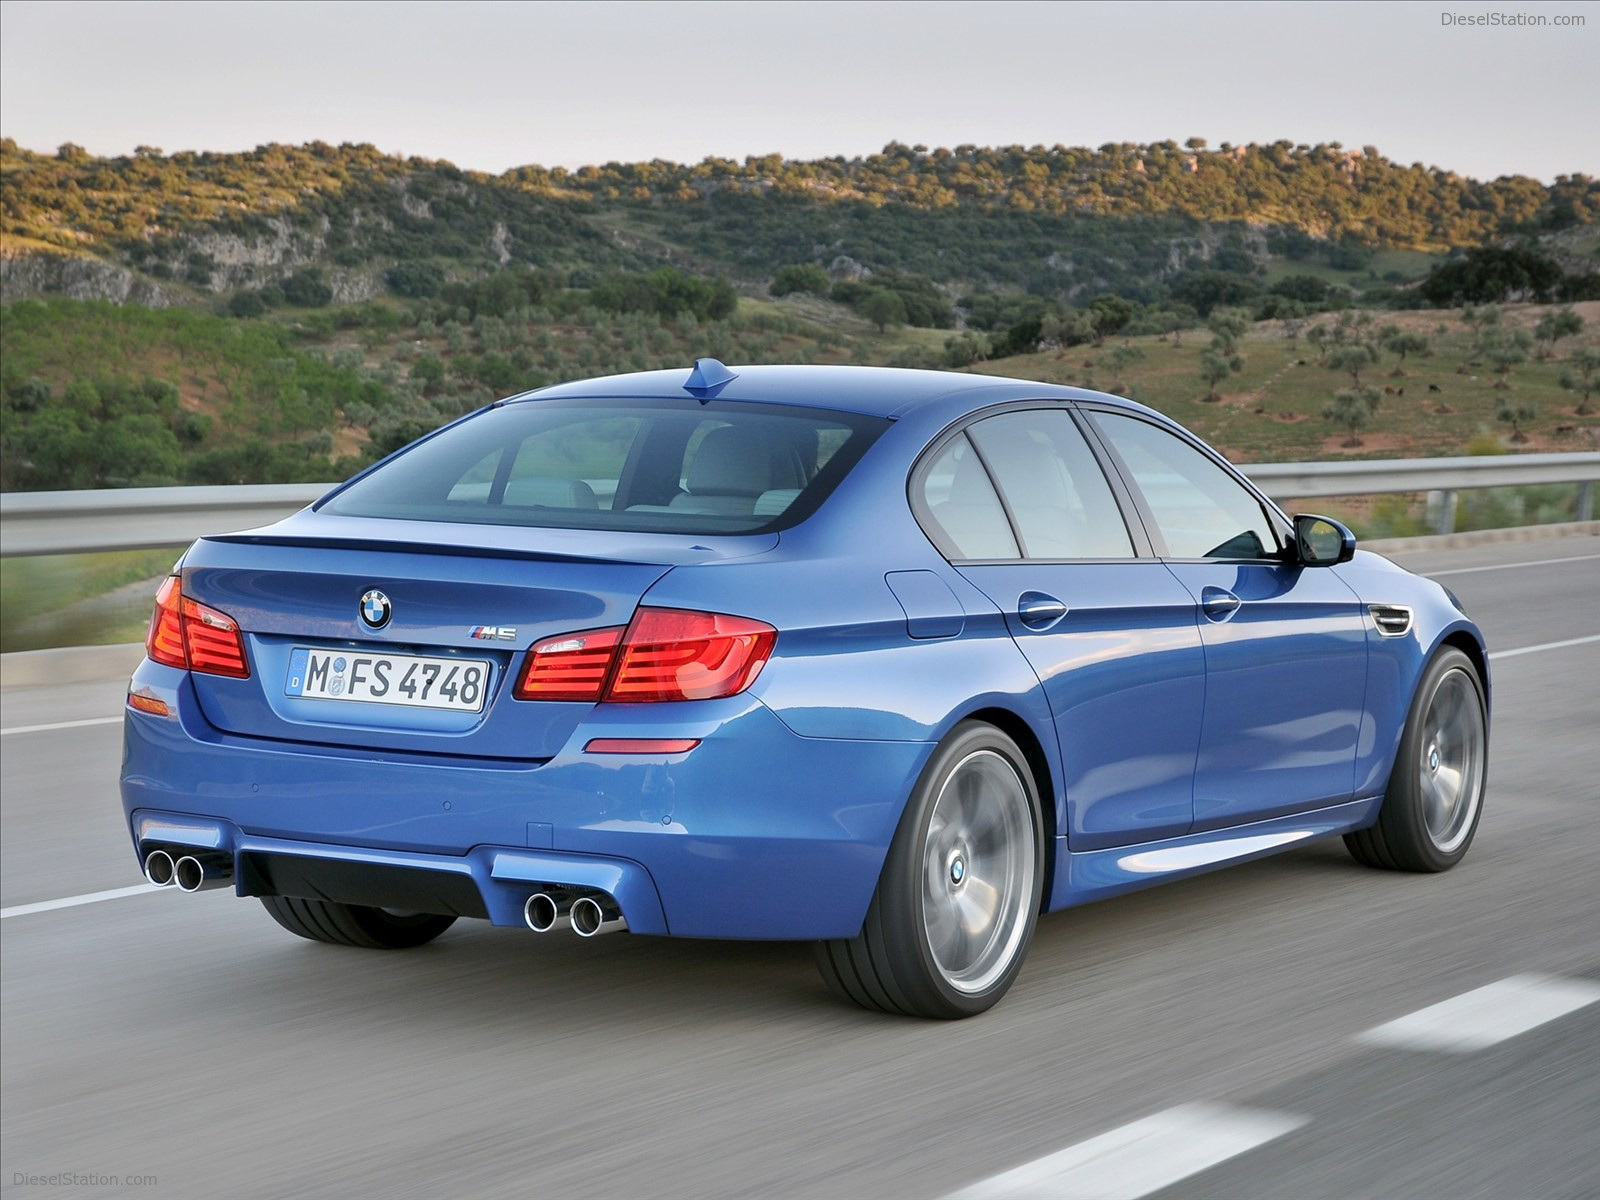 BMW M5 Saloon 2012 - Car Wallpapers at Dieselstation